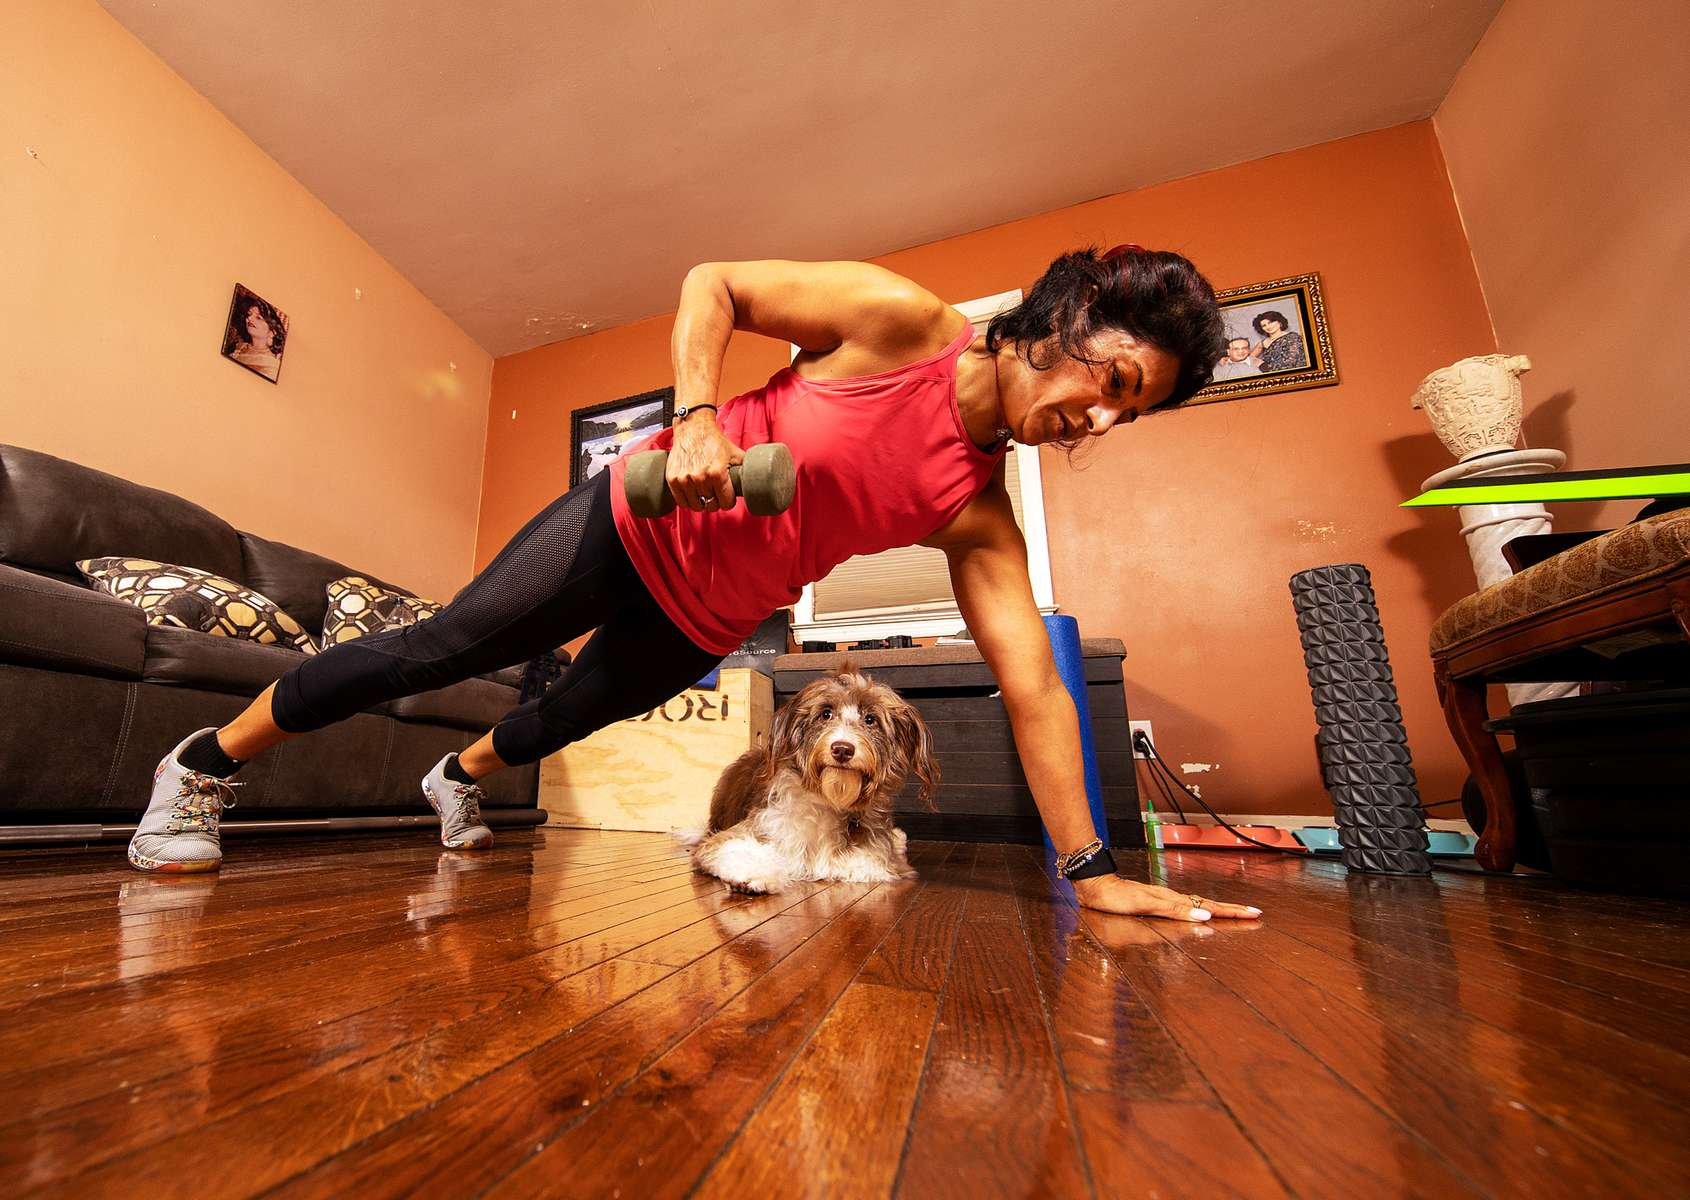 Anu Mago exercises with her virtual Fitness Trainer Dennis Guerrero as her dog Luna watches on October 30, 2020 in Baldwin, New York.  In March of 2014, Dennis Guerrero and his business partner opened a gym on Long Island. The pair shared a passion for fitness, a dream of creating a local community of like-minded people and a willingness to take a risk. Over the next six years, hundreds of members experienced and embraced a unique environment that fostered a palpable energy, helping athletes of all ages and abilities reach their potential.  The gym became a place to share achievements, work through losses and overcome illness. But like so many other businesses, it seemingly had no way of overcoming the financial impact and ongoing uncertainty of a global pandemic. With the arrival of Covid-19, the gym shut its doors back in March, with no idea when it would reopen. The owners, though, were far from done. They lent out every piece of equipment they owned to the gym's members, continued to pay their staff and worked to set up outdoor classes in hopes of keeping their membership active and healthy. As the shutdown stretched on, it became clear that the physical gym was closed for good.  They have since reinvented themselves and are now called Life Outside the Box.  Their business model has changed drastically, and all their workouts have gone virtual.  The workouts are conducted by a small group of fitness trainers led by Guerrero.  The members pay a monthly fee and can take live Zoom fitness classes.  They are coached by the virtual trainers in real time.  More and more people have reconstructed their garages, spare rooms, backyards, and basements into home gyms since the COVID-19 pandemic hit the United States.